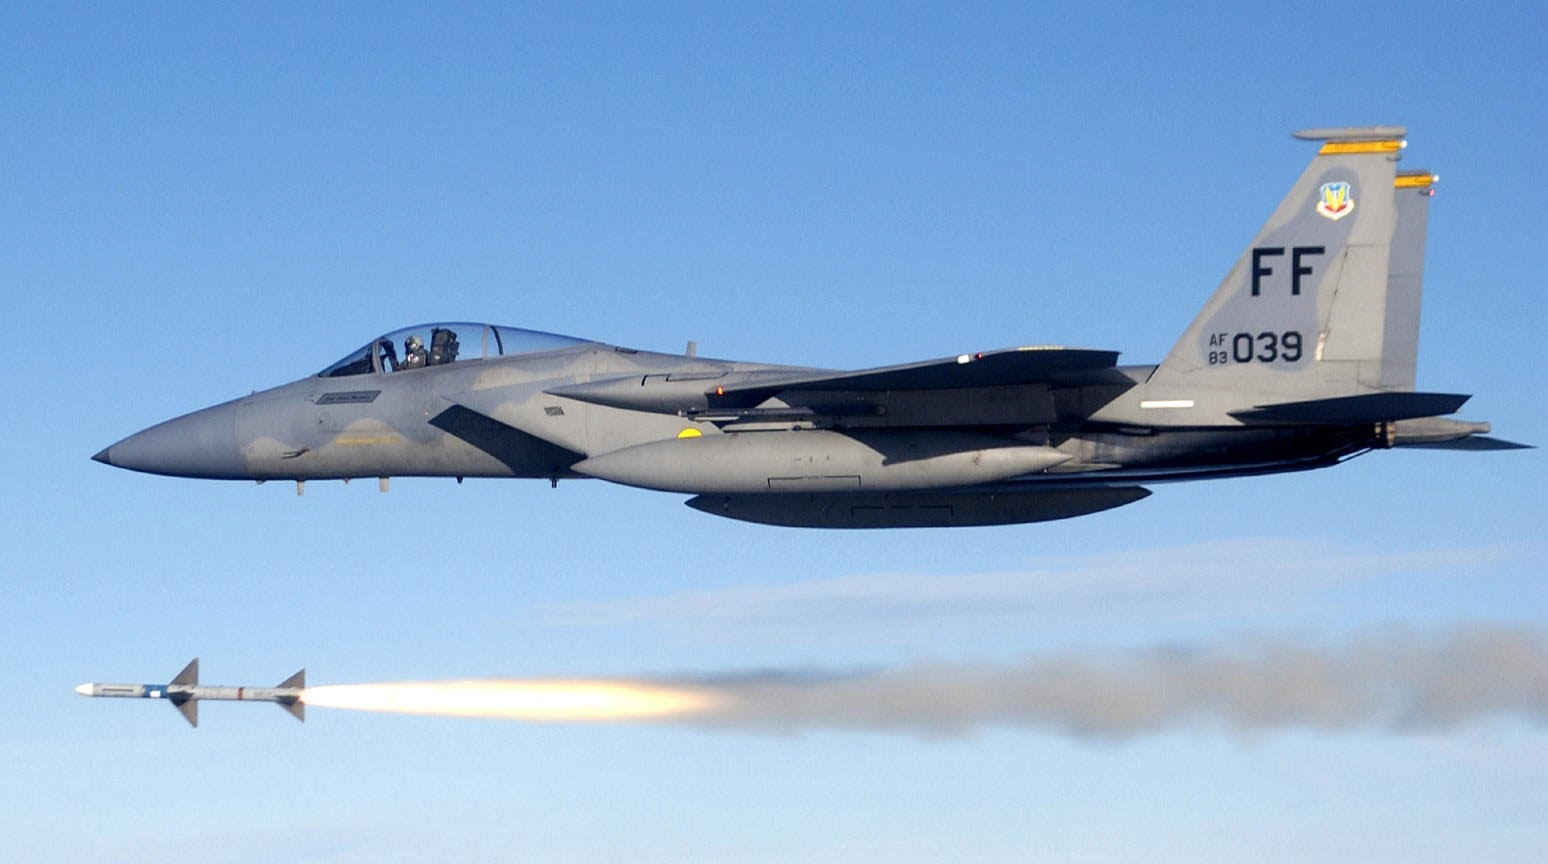 F-Documentary-on-the-F-Eagle-Military-Fighter-Jet-wallpaper-wp3405317